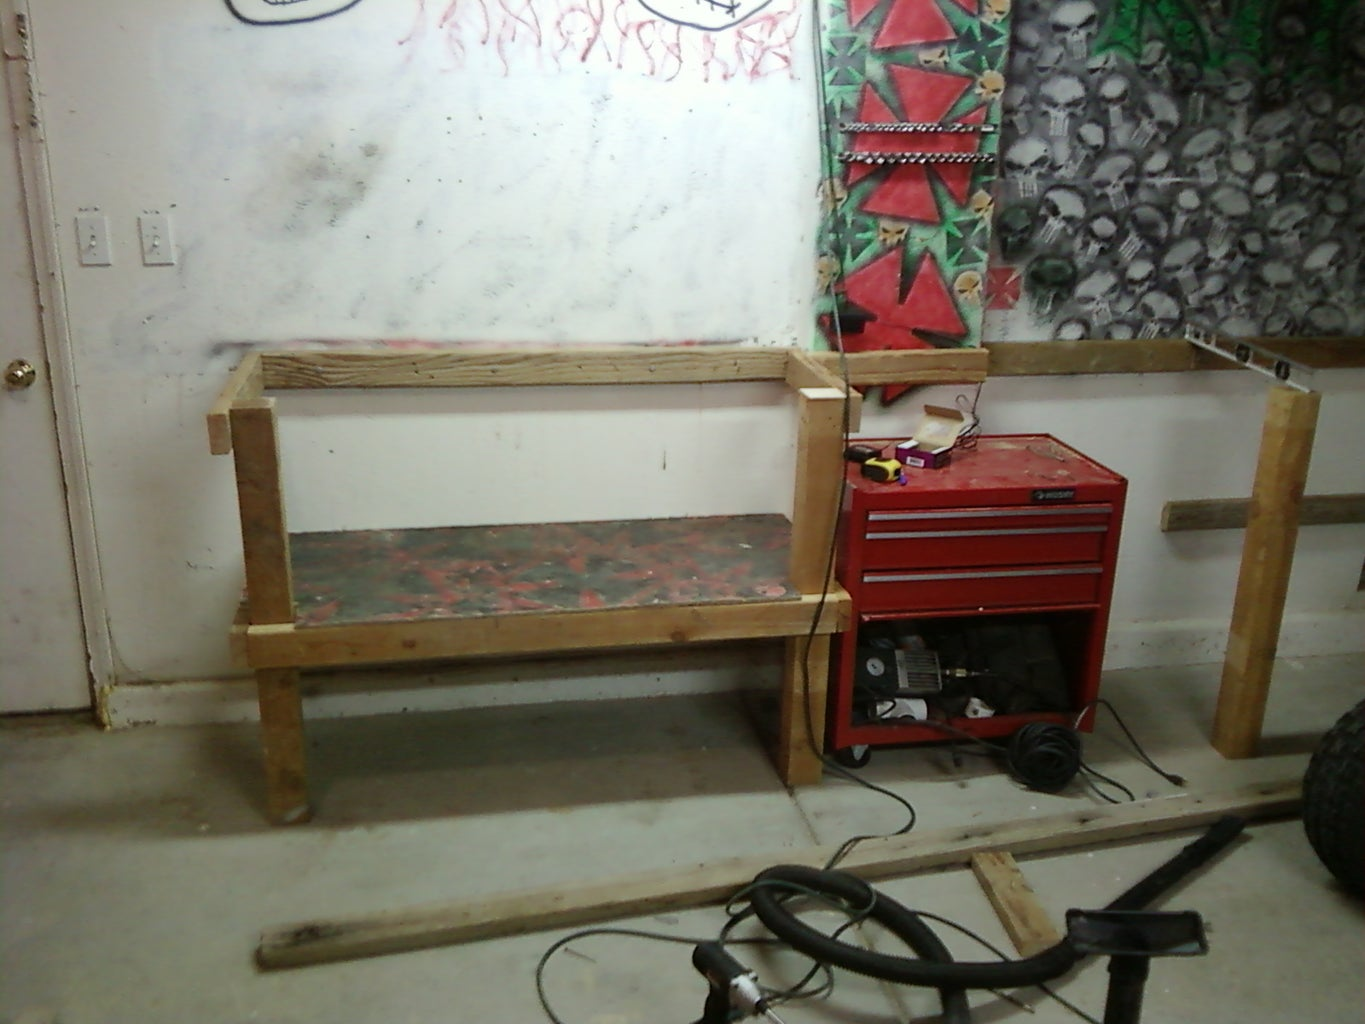 Legs and Shelf Support